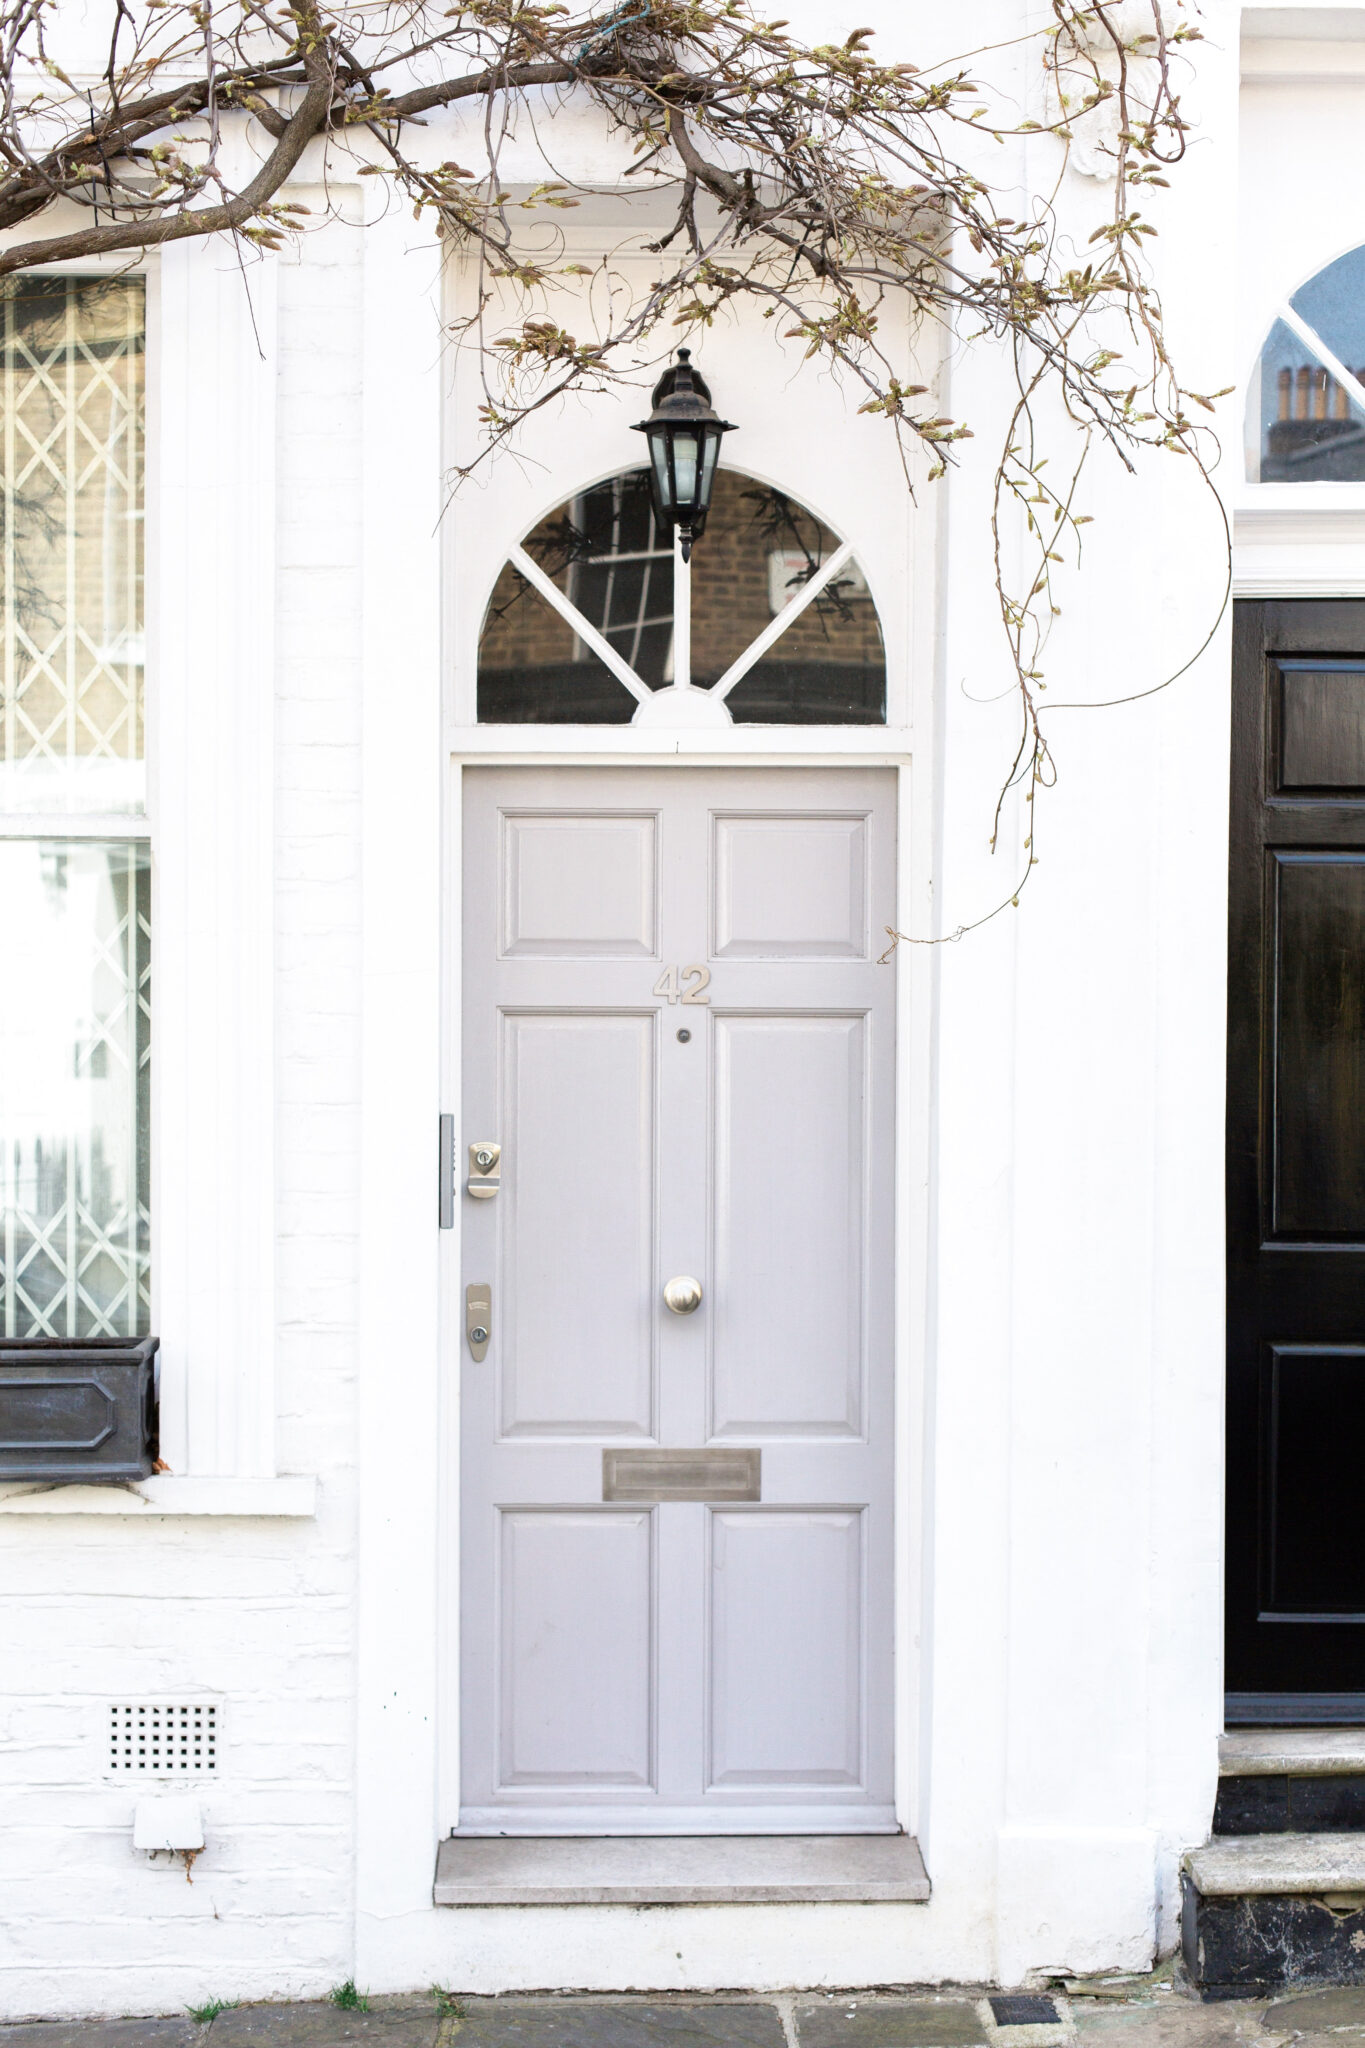 A white building with a grey door. Above the grey door there is an angled window. This article covers tips for when you're ready to sell your property.